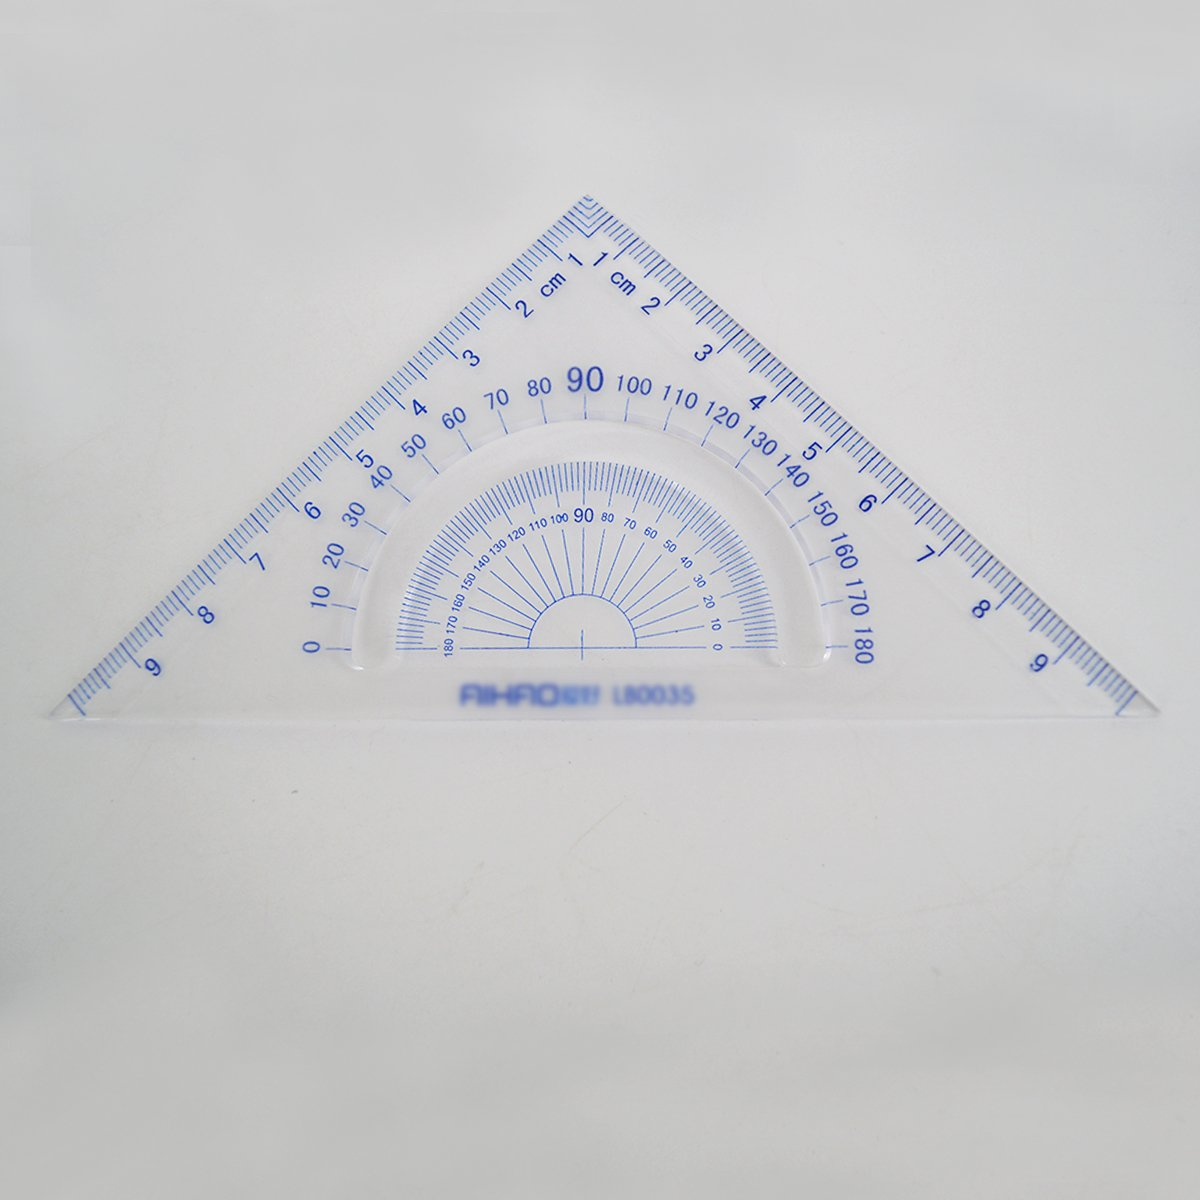 Monique 4 Pieces Math Geometry Tool Set Clear Plastic Ruler Set Straight Rule Triangle Rule Protractor Dark Blue Package